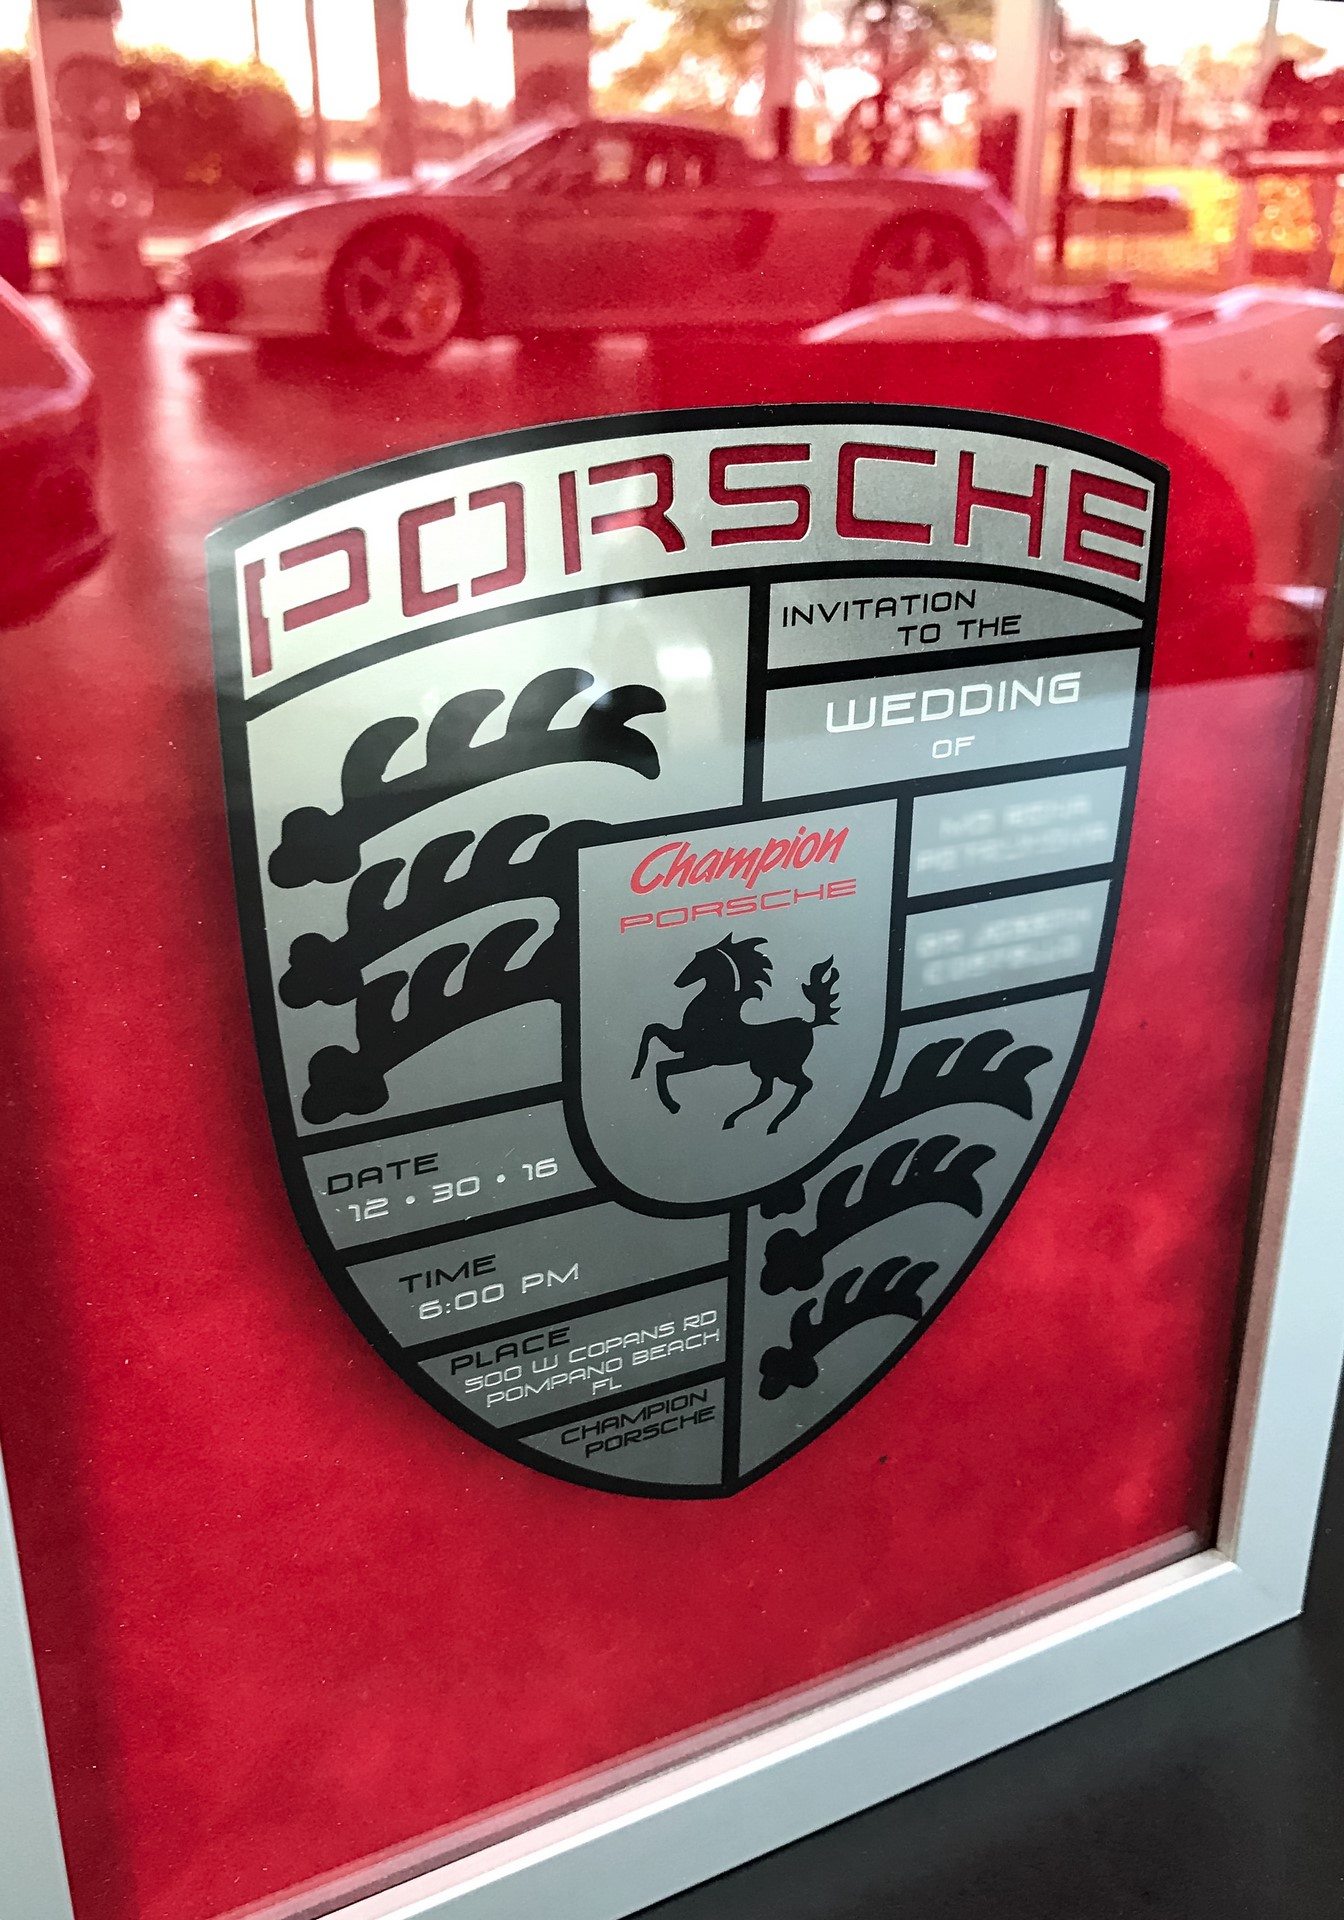 Champion Porsche wedding (16)